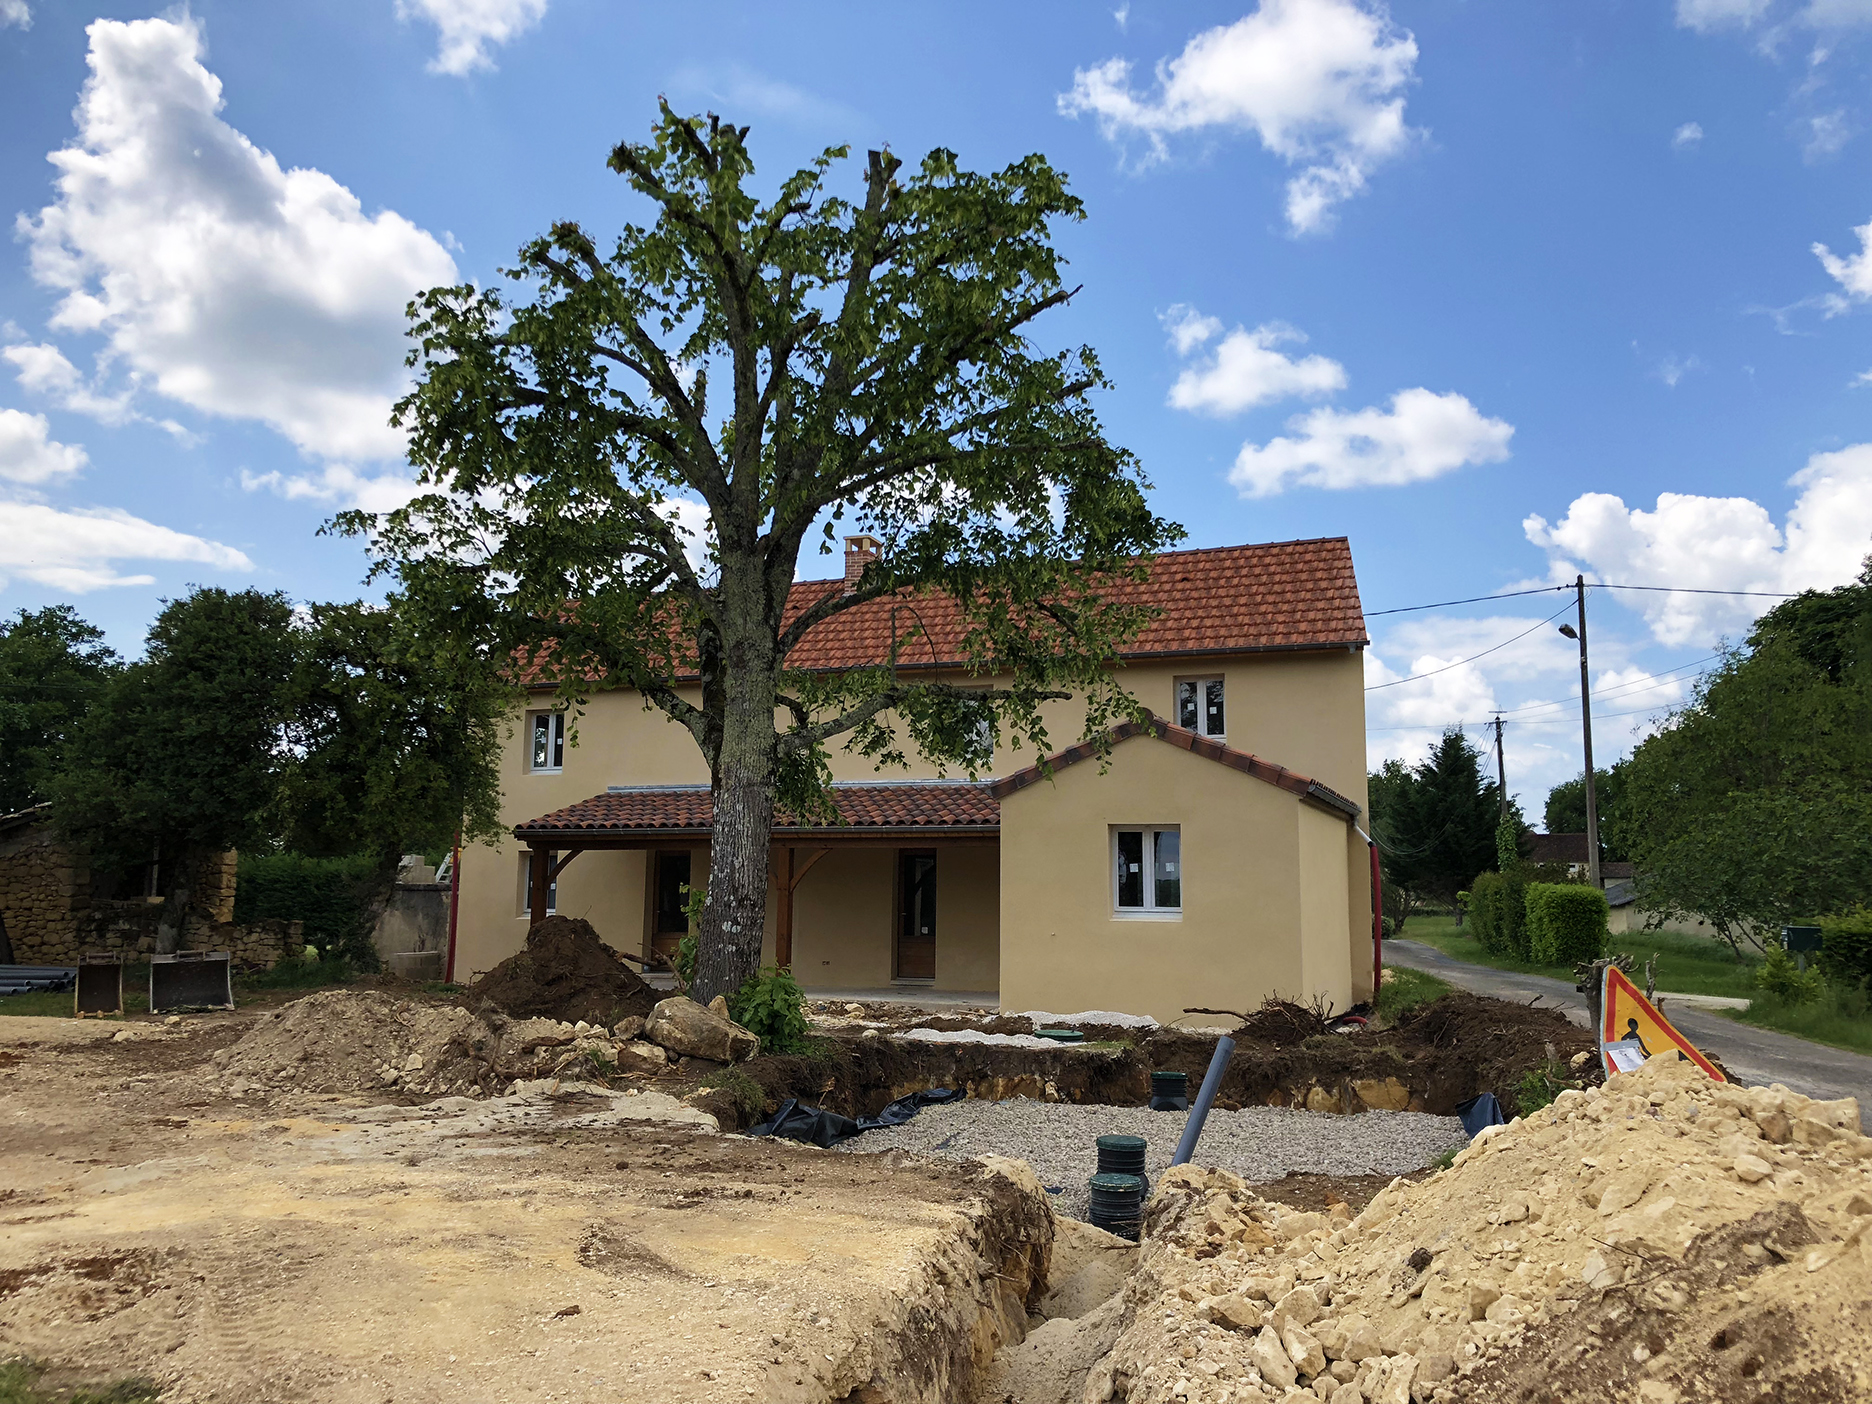 They tried to be as gentle as possible with our linden tree. Although a good chunk of its root system was removed, the tree survived the trauma and is doing well.